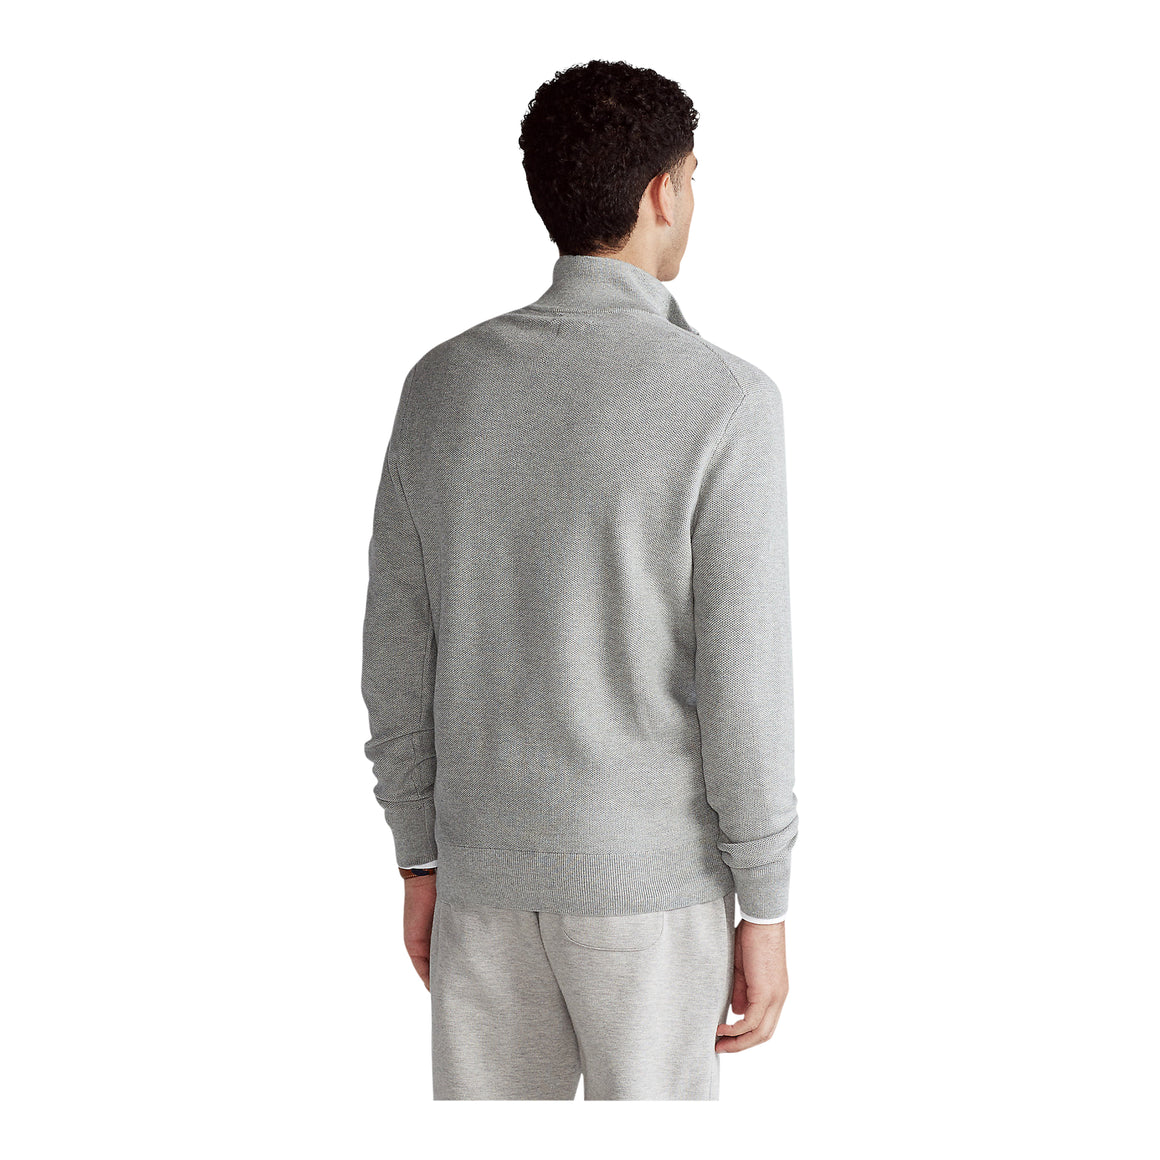 Pima 1/2 Zip Knit for Men in Grey